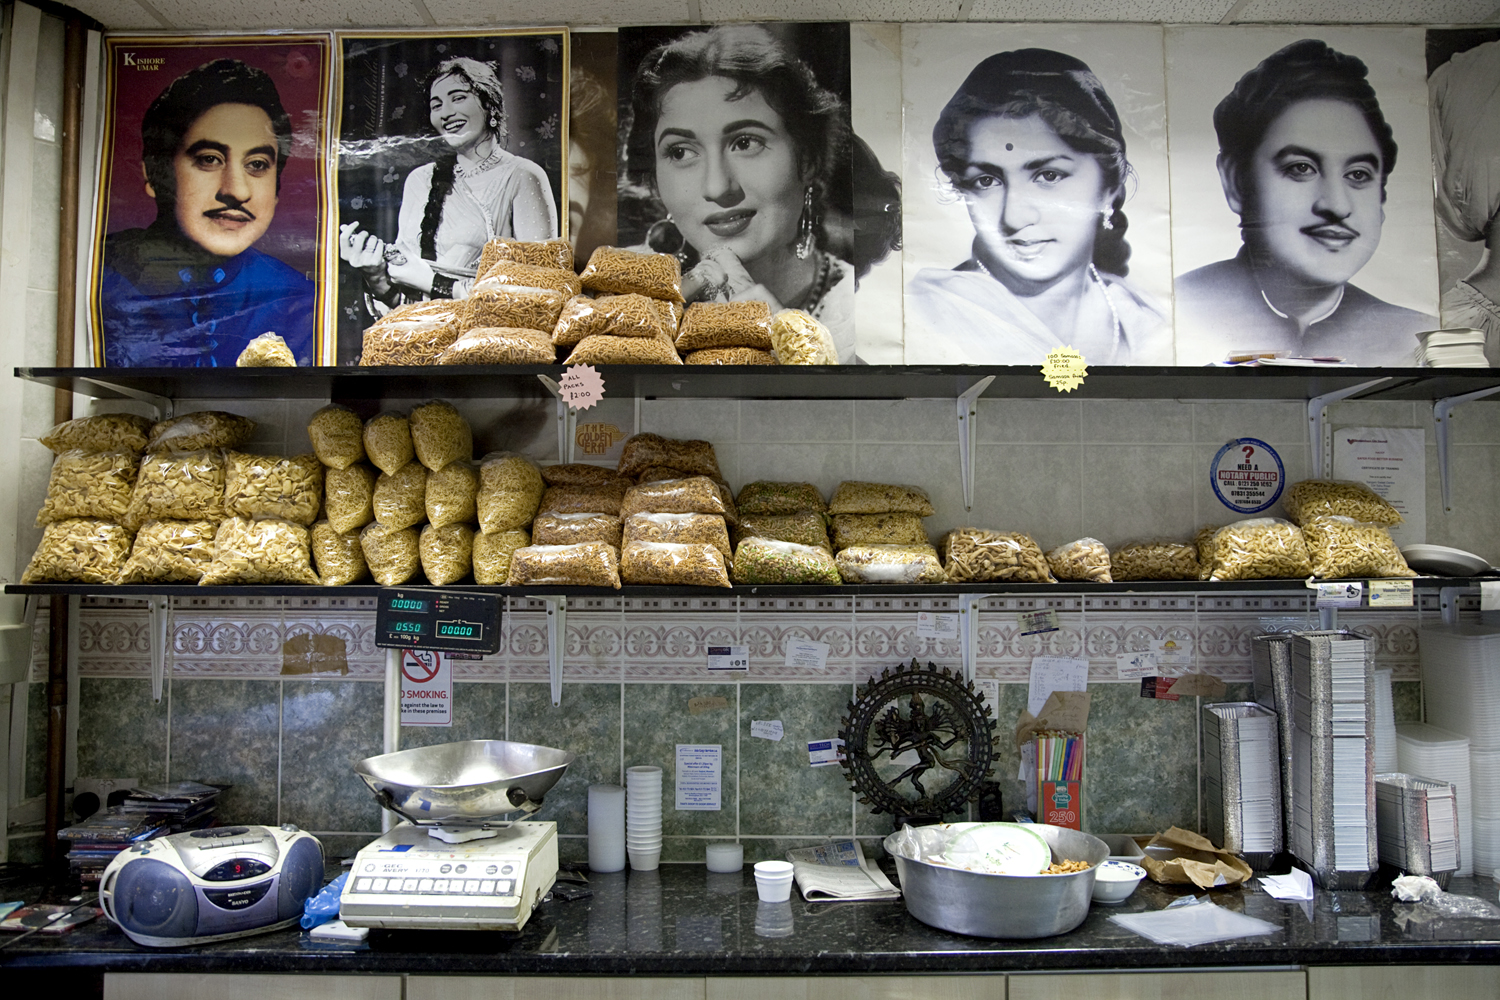 The Hindu owners of the Sweet center, one of the many sweet shops on Soho Road, are Bollywood fans.  Posters of Indian film and music stars are draped around the shop alongside Hindu statues.